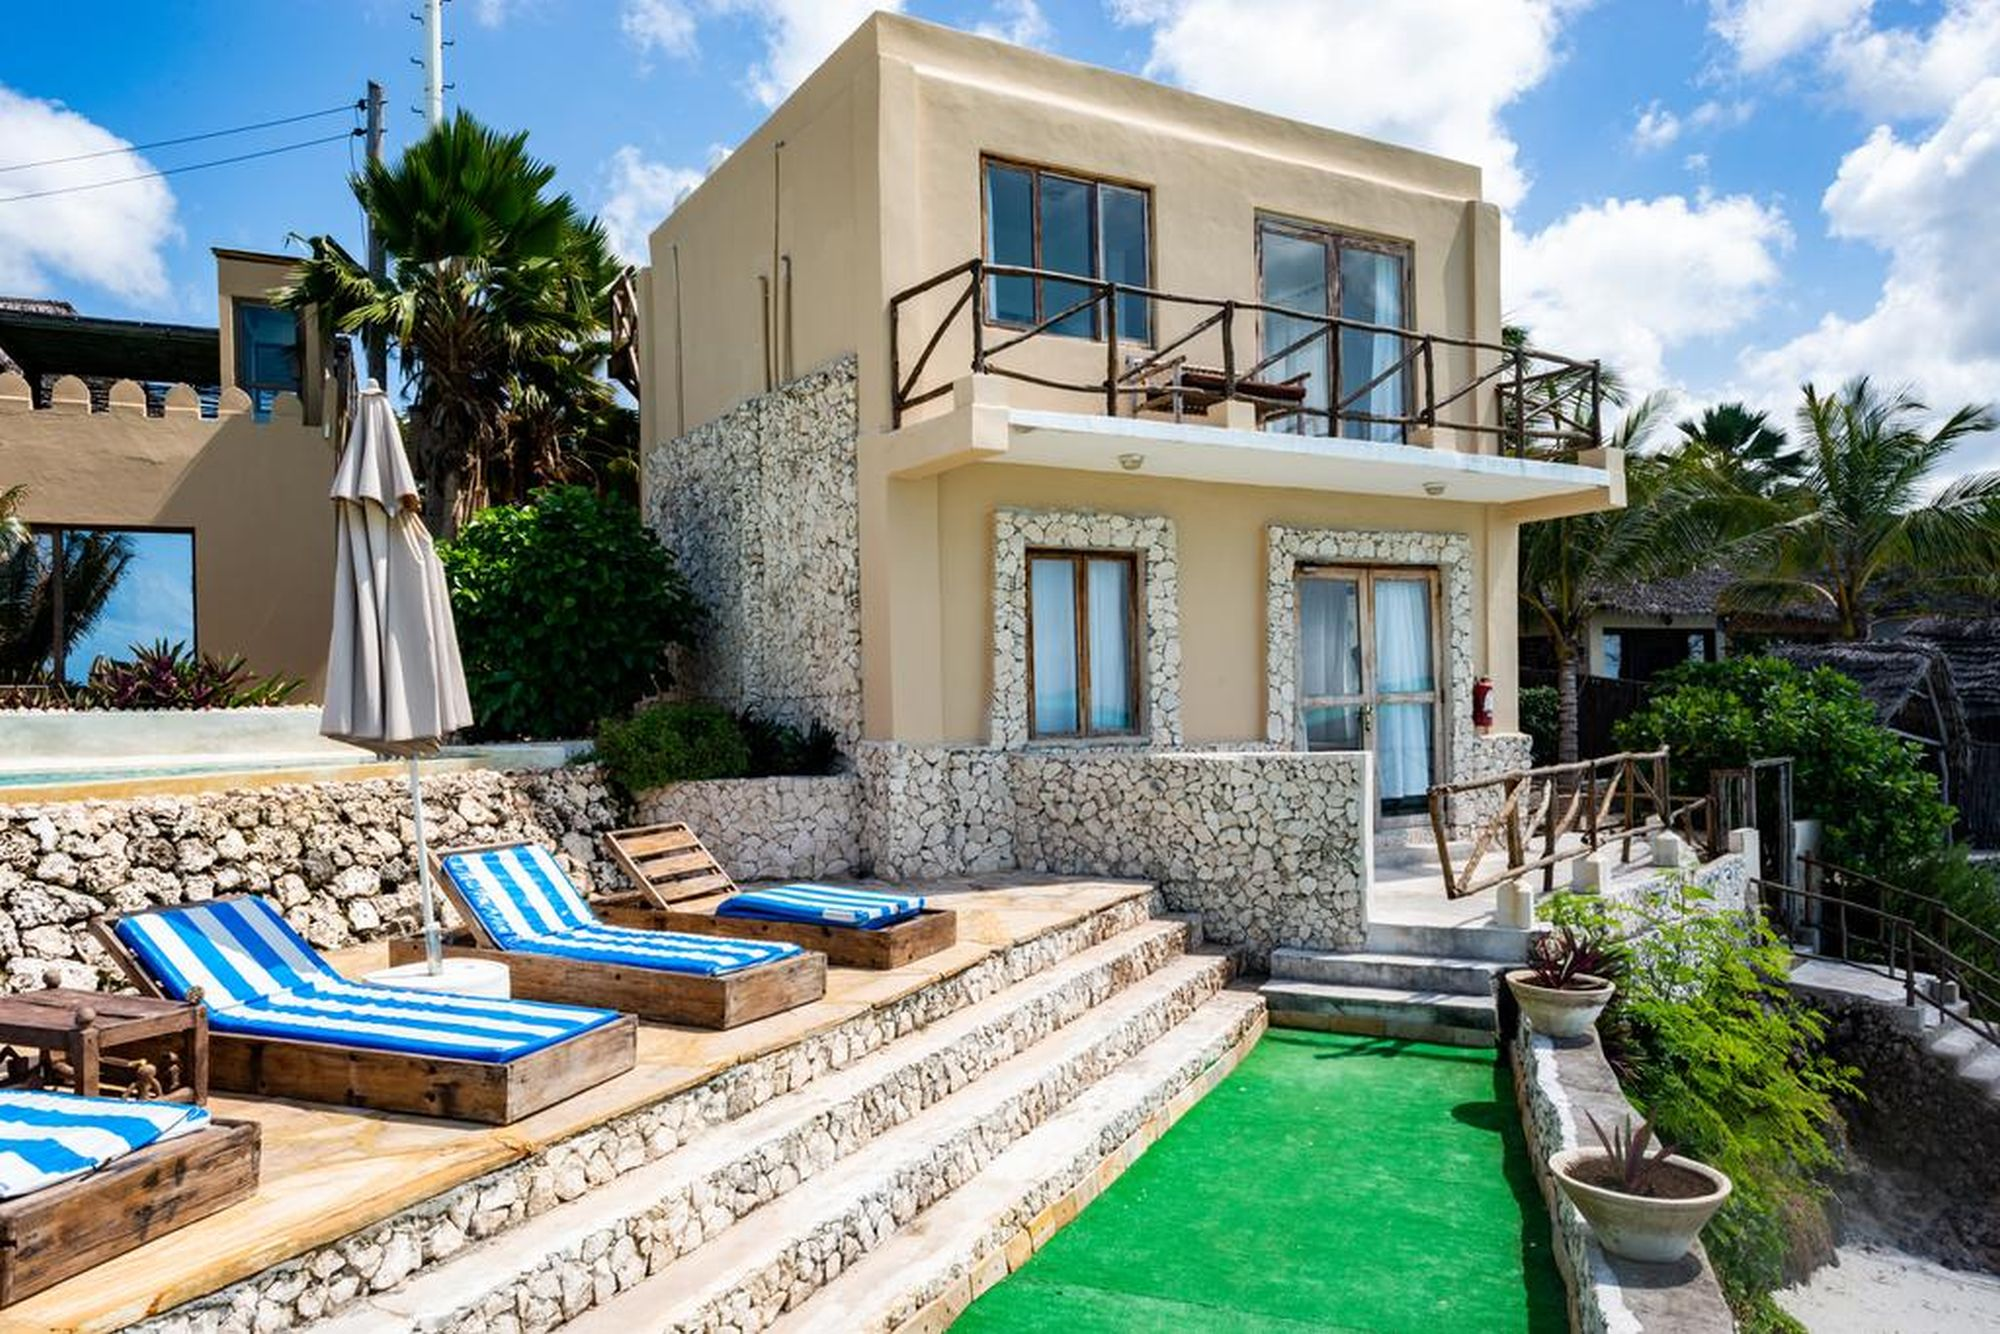 Coral Rock Beach Resort – Villa, 3 bedrooms with sea view